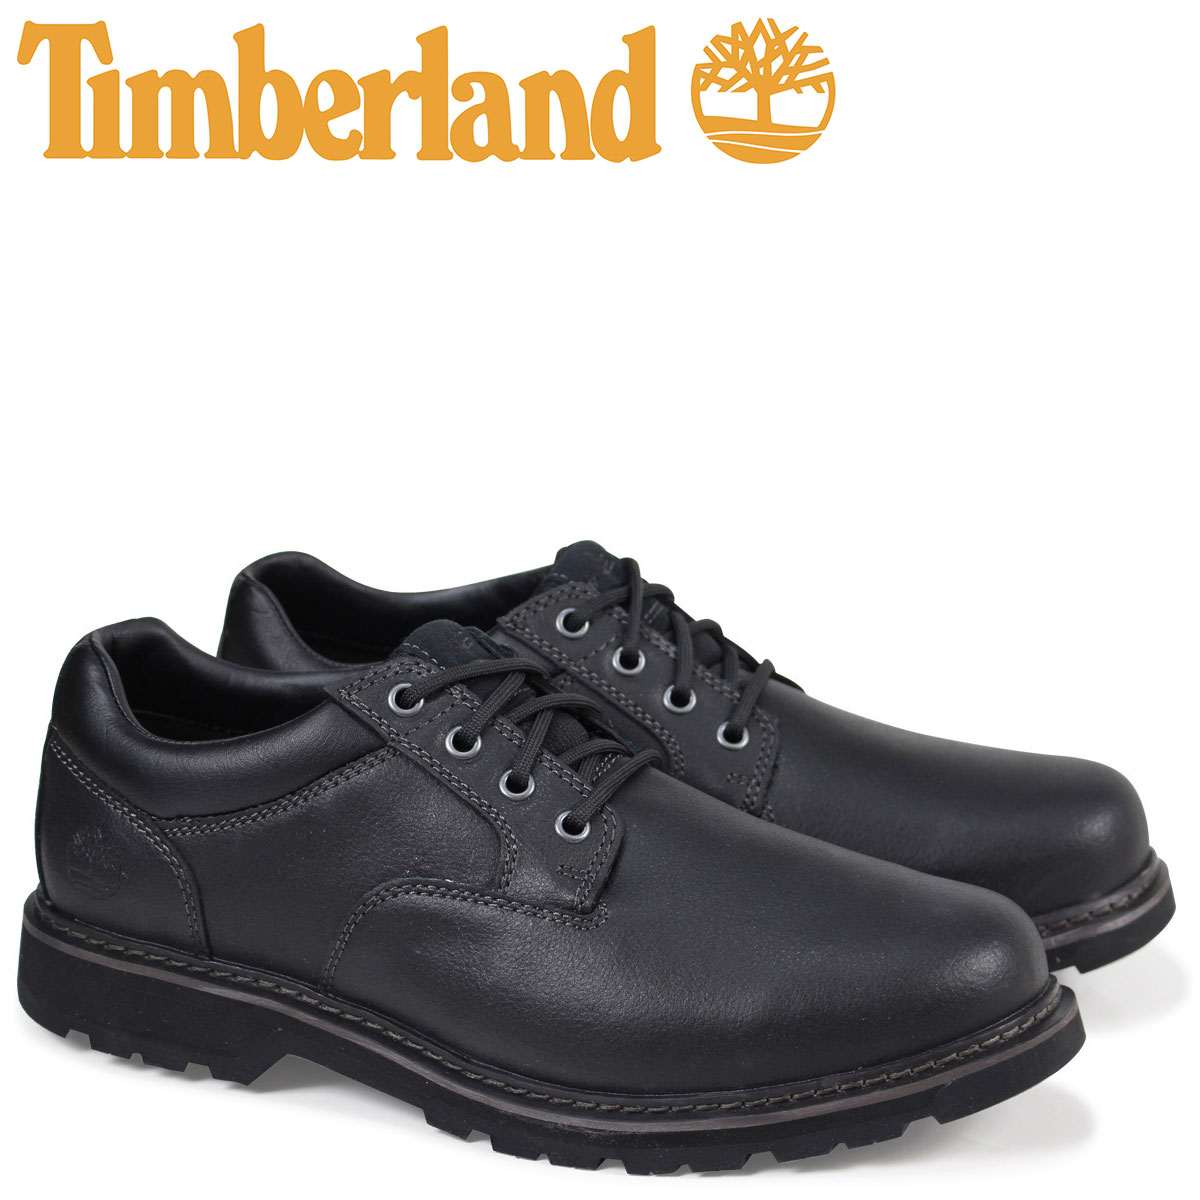 release date sneakers many styles Timberland Oxford shoes men Timberland WOODMONT OXFORD SHOES A17YG W Wise  black